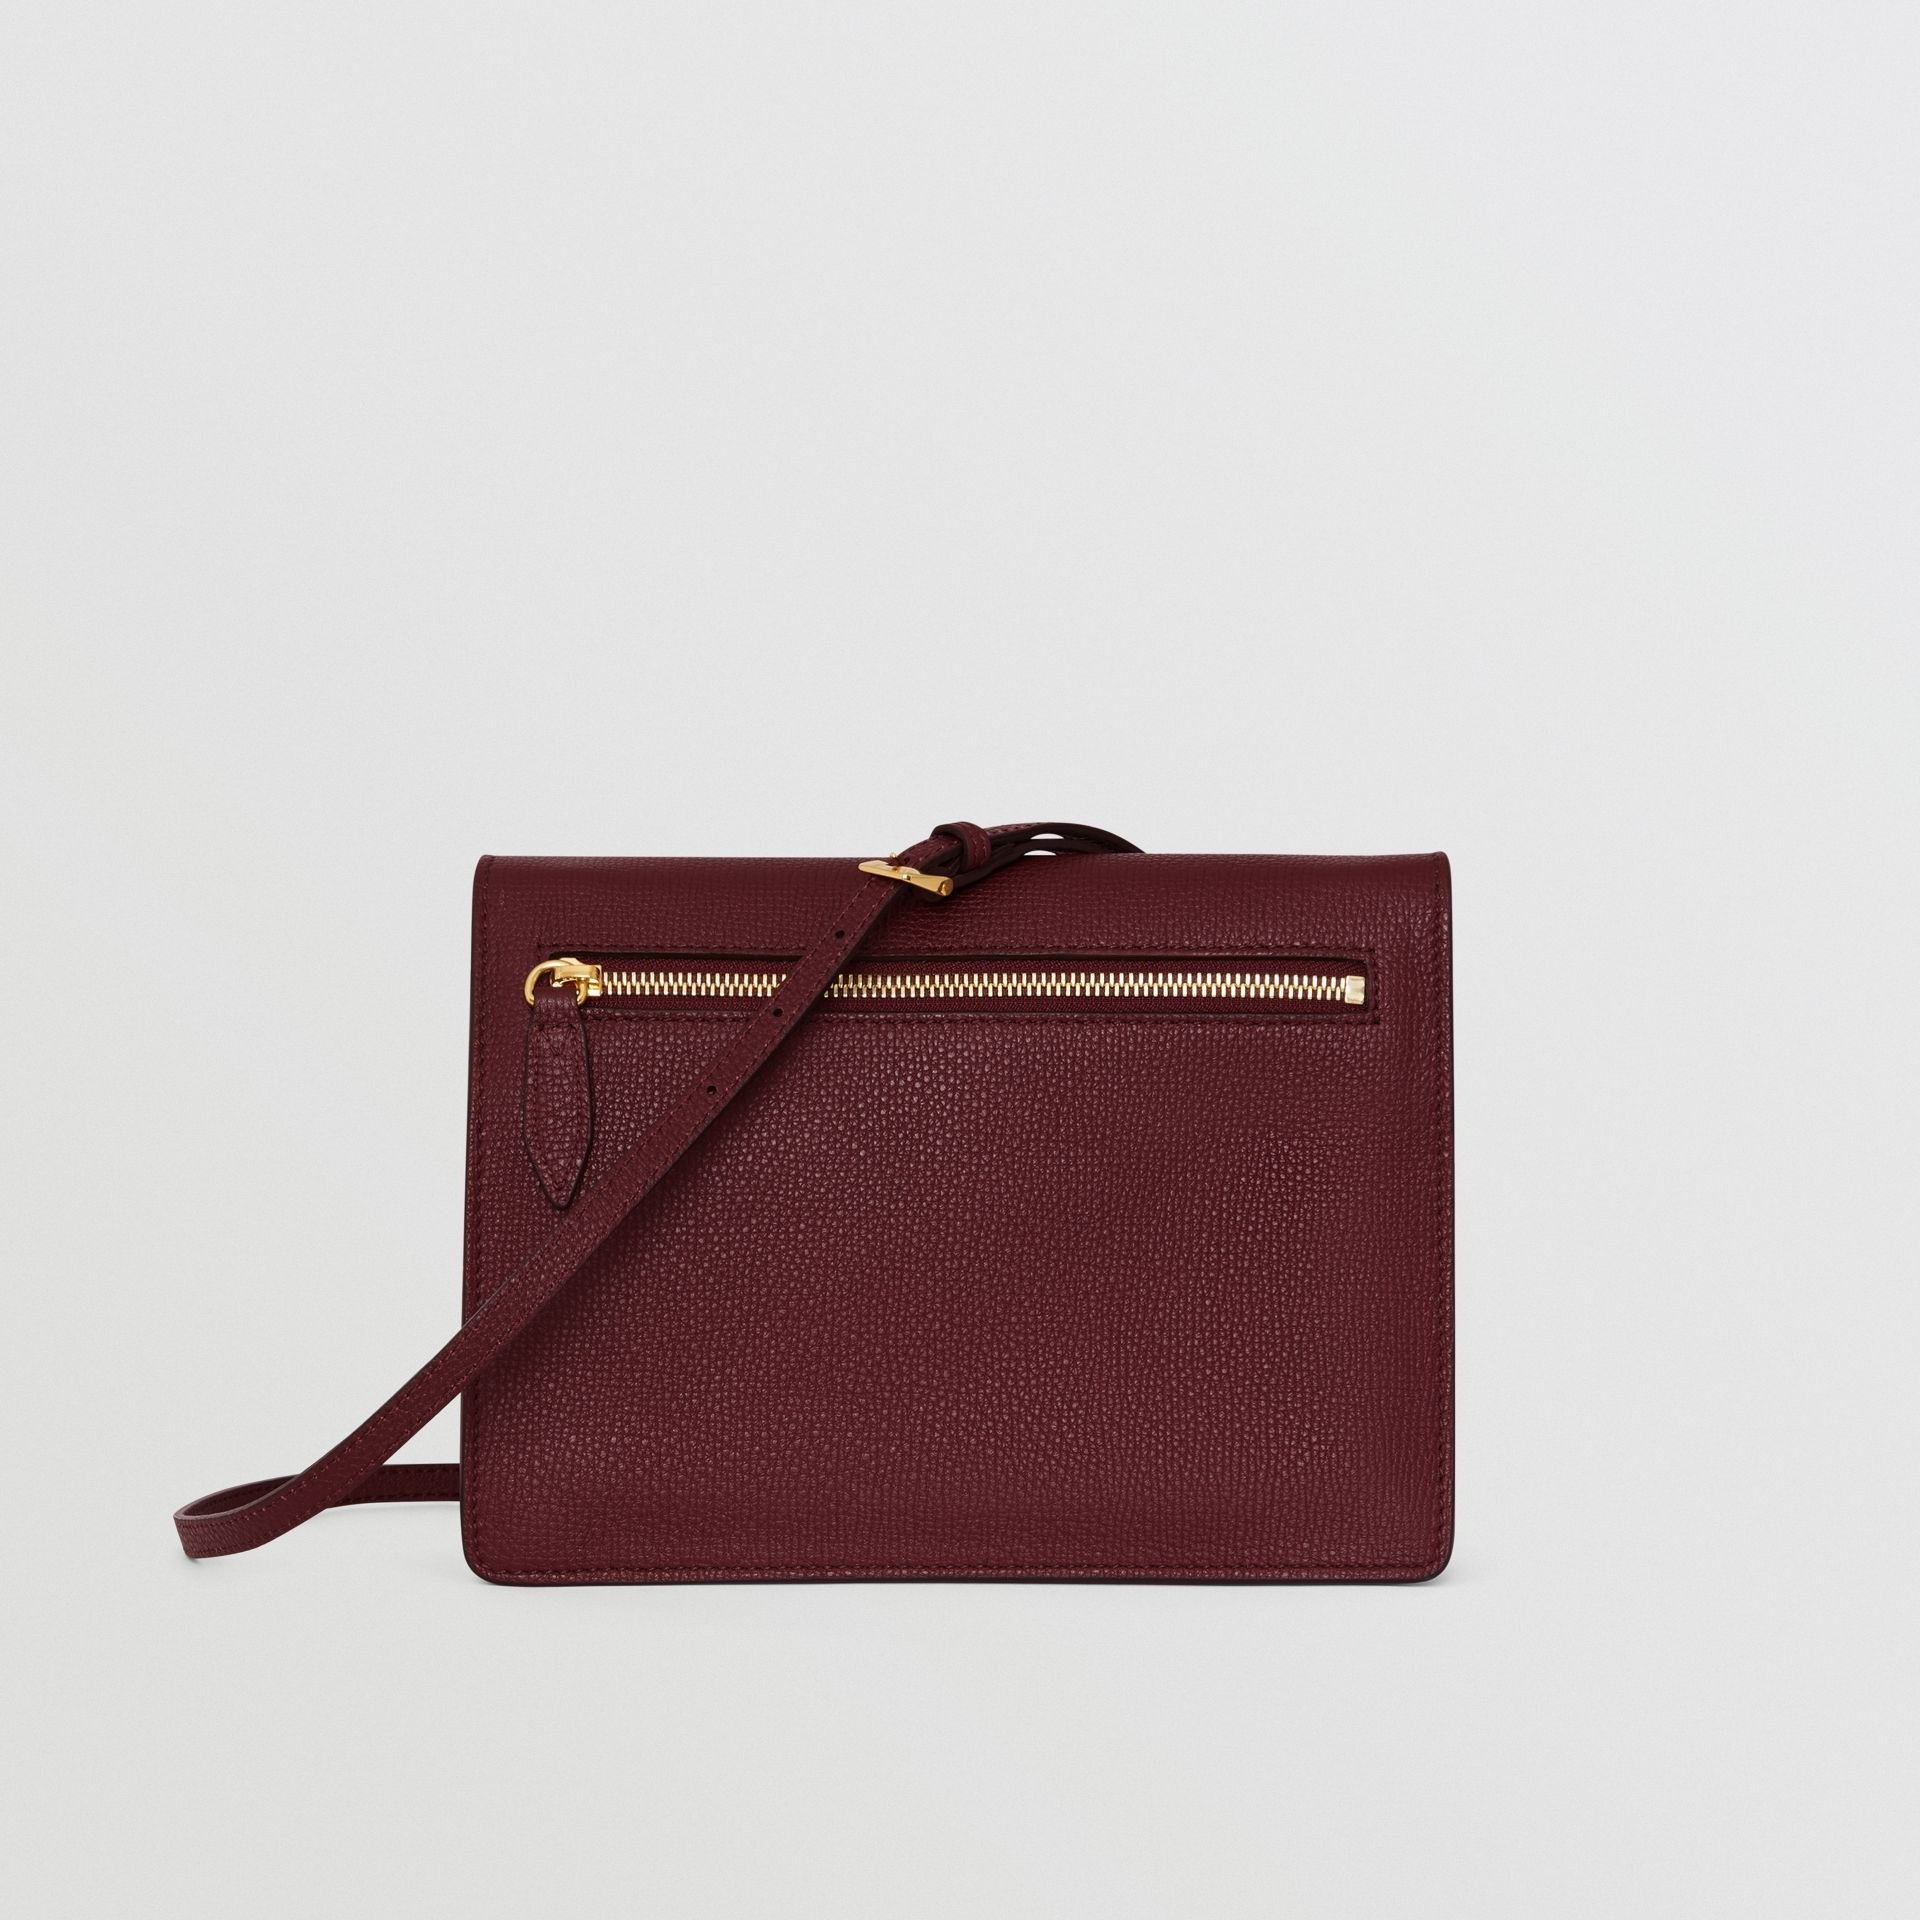 Small Leather Crossbody Bag in Mahogany Red - Women | Burberry Australia - gallery image 7